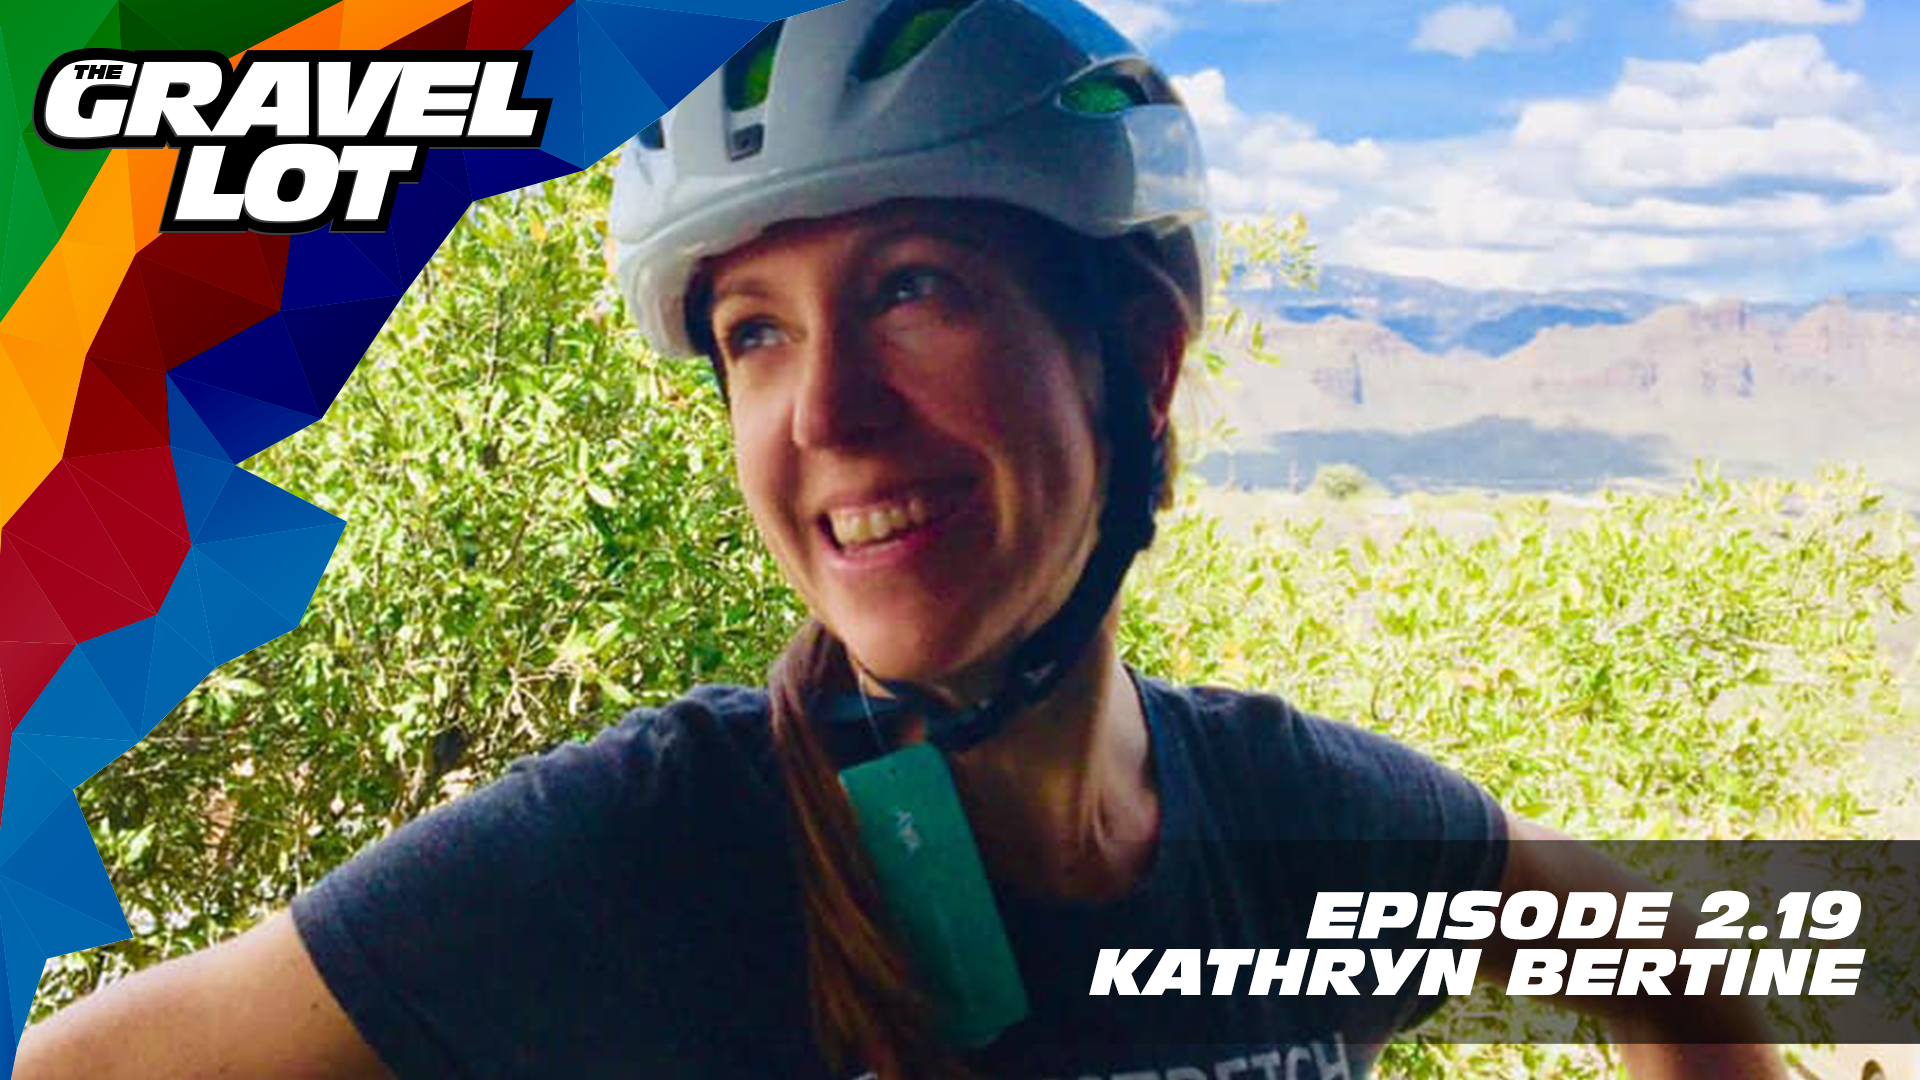 """Episode 71: Author, filmmaker, advocate, athlete, and the muscle behind The Homestretch Foundation, Kathryn Bertine joins us this week. We discuss how her career, life experiences, and unique skills have informed how she is working to make a difference for a new generation of athlete.   Visit The Gravel Lot website for our latest podcast, Real Talk videos, Bonus Content, shop, social media, and everything in between.    Red Kite Ronde Registration    Handup Gloves: Use code """"PEBBLE$"""" for 20% off EVERYTHING in store.    Be Free Ride Bikes:    RoadID: Save $10 off ANY order over $20.    Noxgear: Use code """"PEBBLES"""" for 35% off any item.    Magas Law Firm:   Subscribe to The Gravel Lot on the  Wide Angle Podium Network and become a member TODAY!   Learn more about Undertipper and download their latest album """"Y'all"""" at:  http://undertipper.bandcamp.com/"""